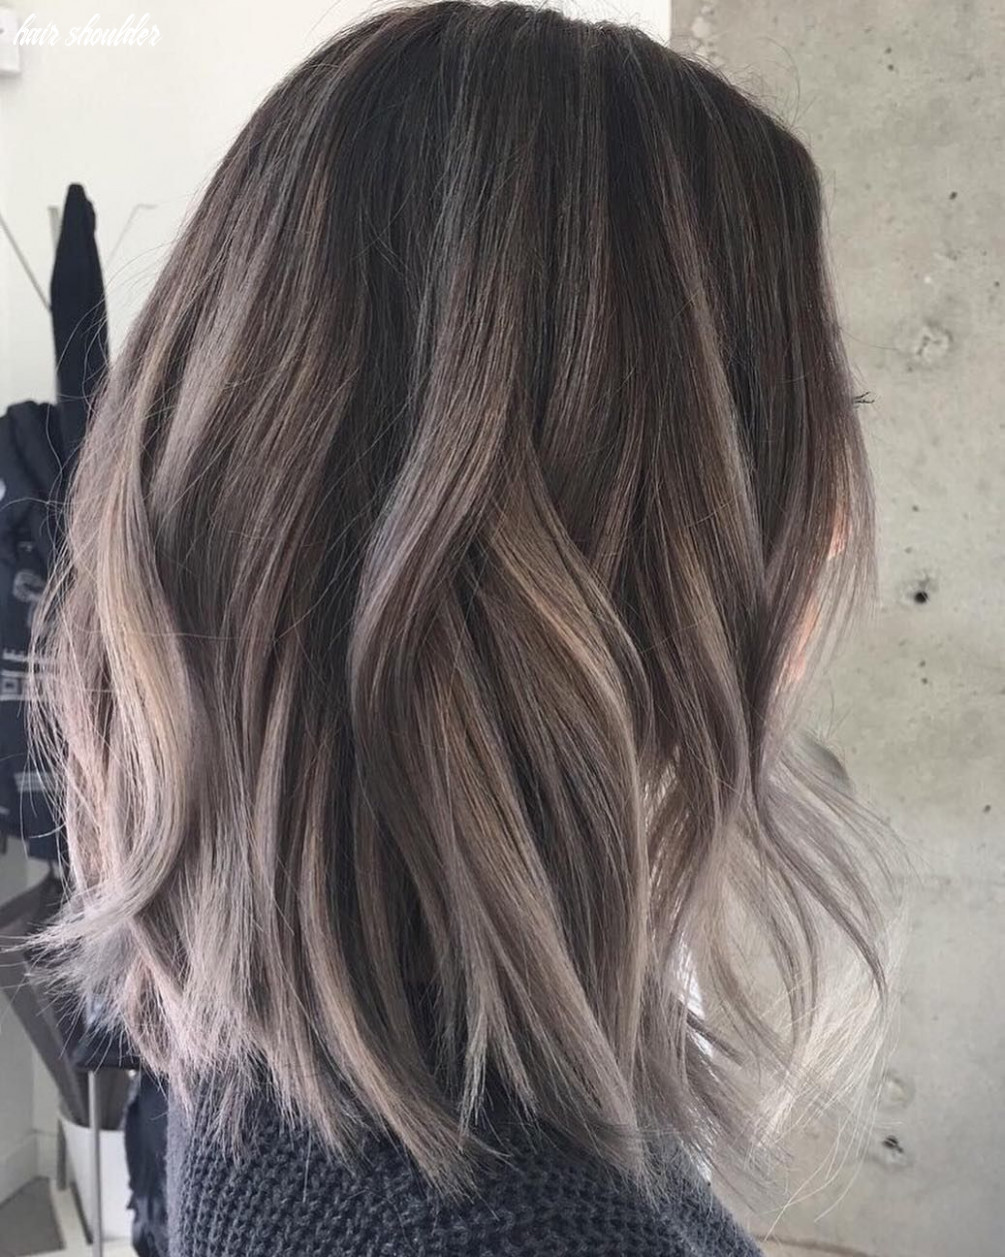 10 medium length hair color heaven – beige – brown – blonde & gray